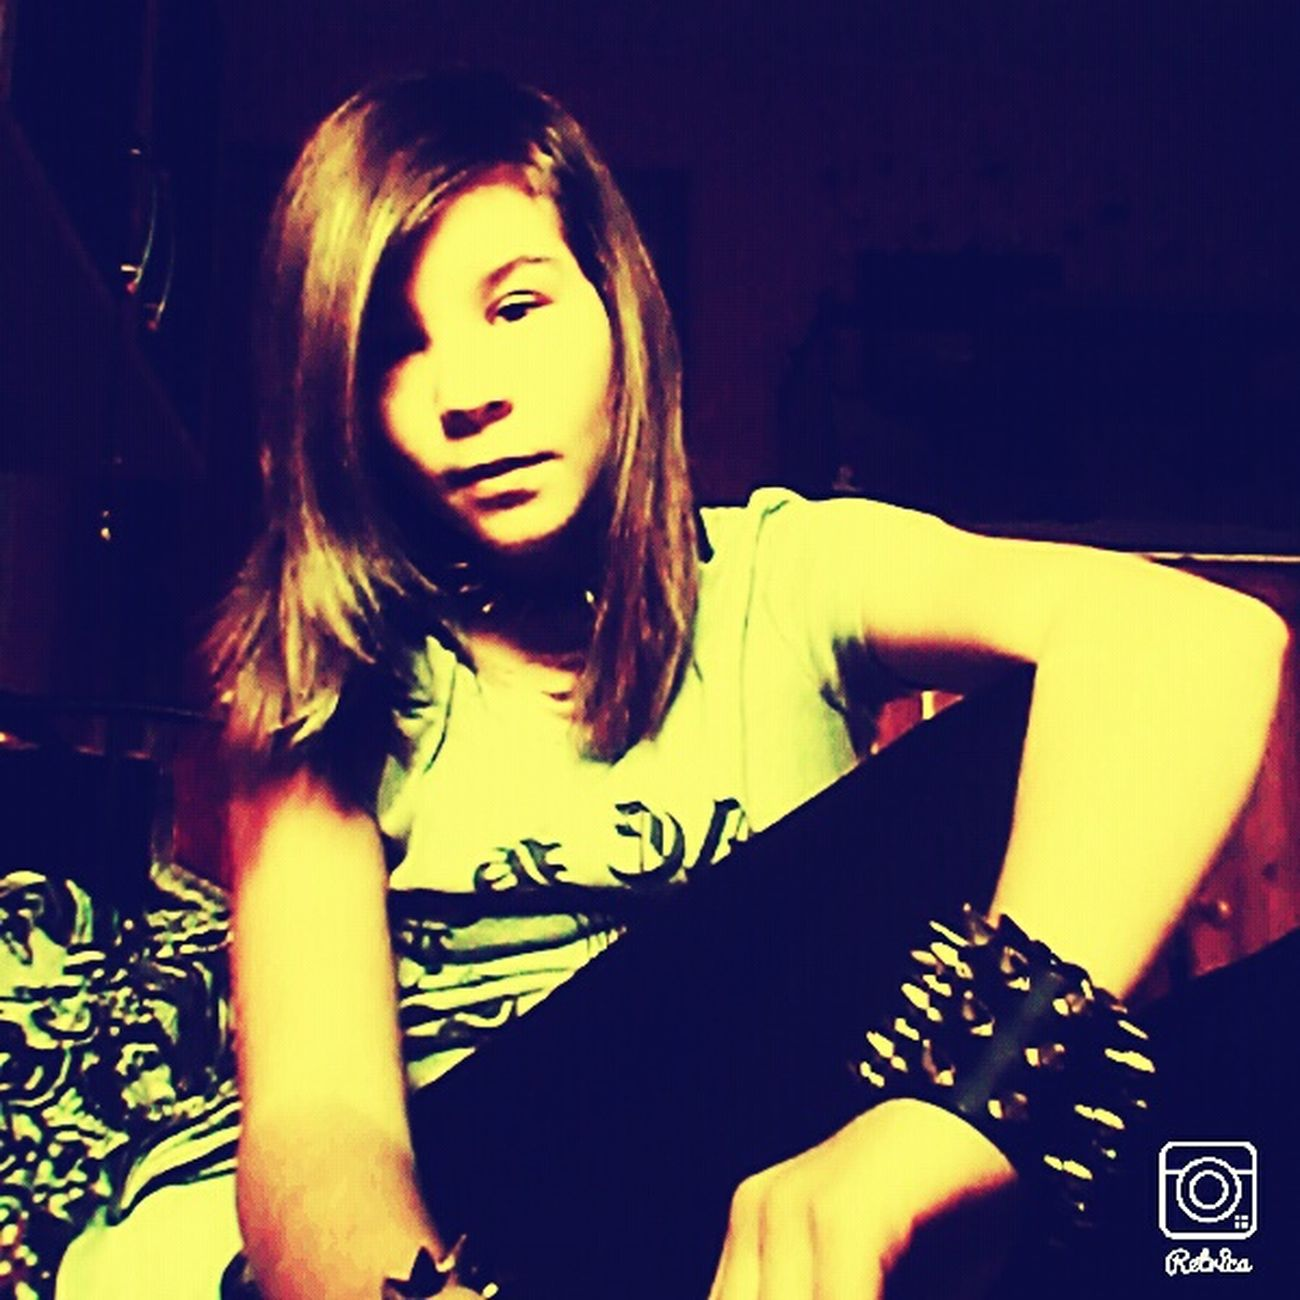 That's Me ♡ LoveGoth*-* Hello World